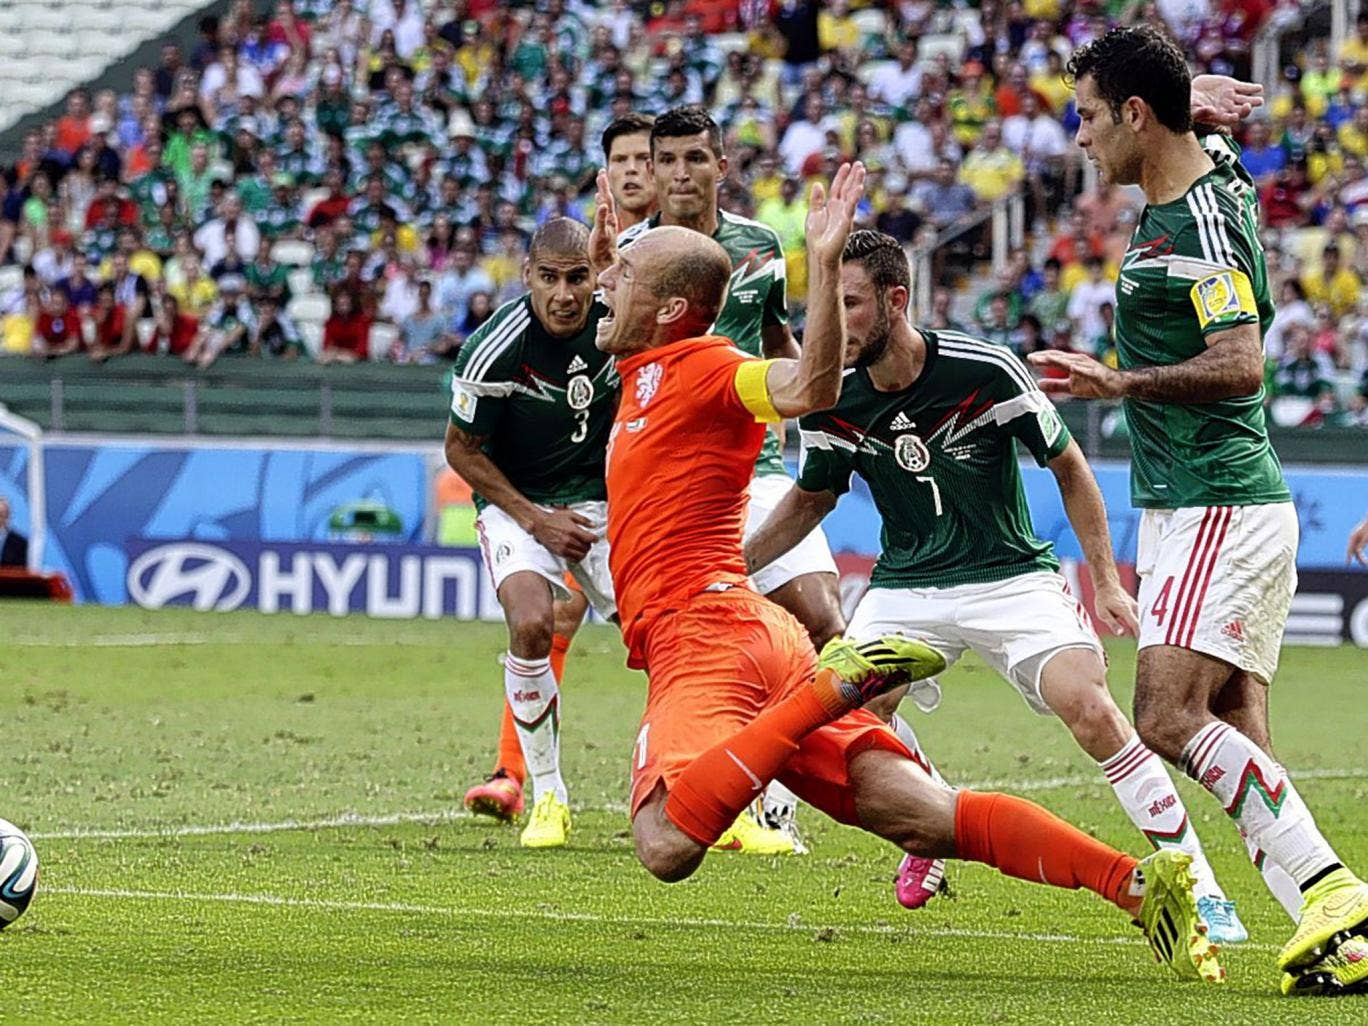 Arjen Robben goes down theatrically after being fouled by Mexico's Rafael Marquez, leading to the penalty that put Netherlands into the World Cup quarter-finals